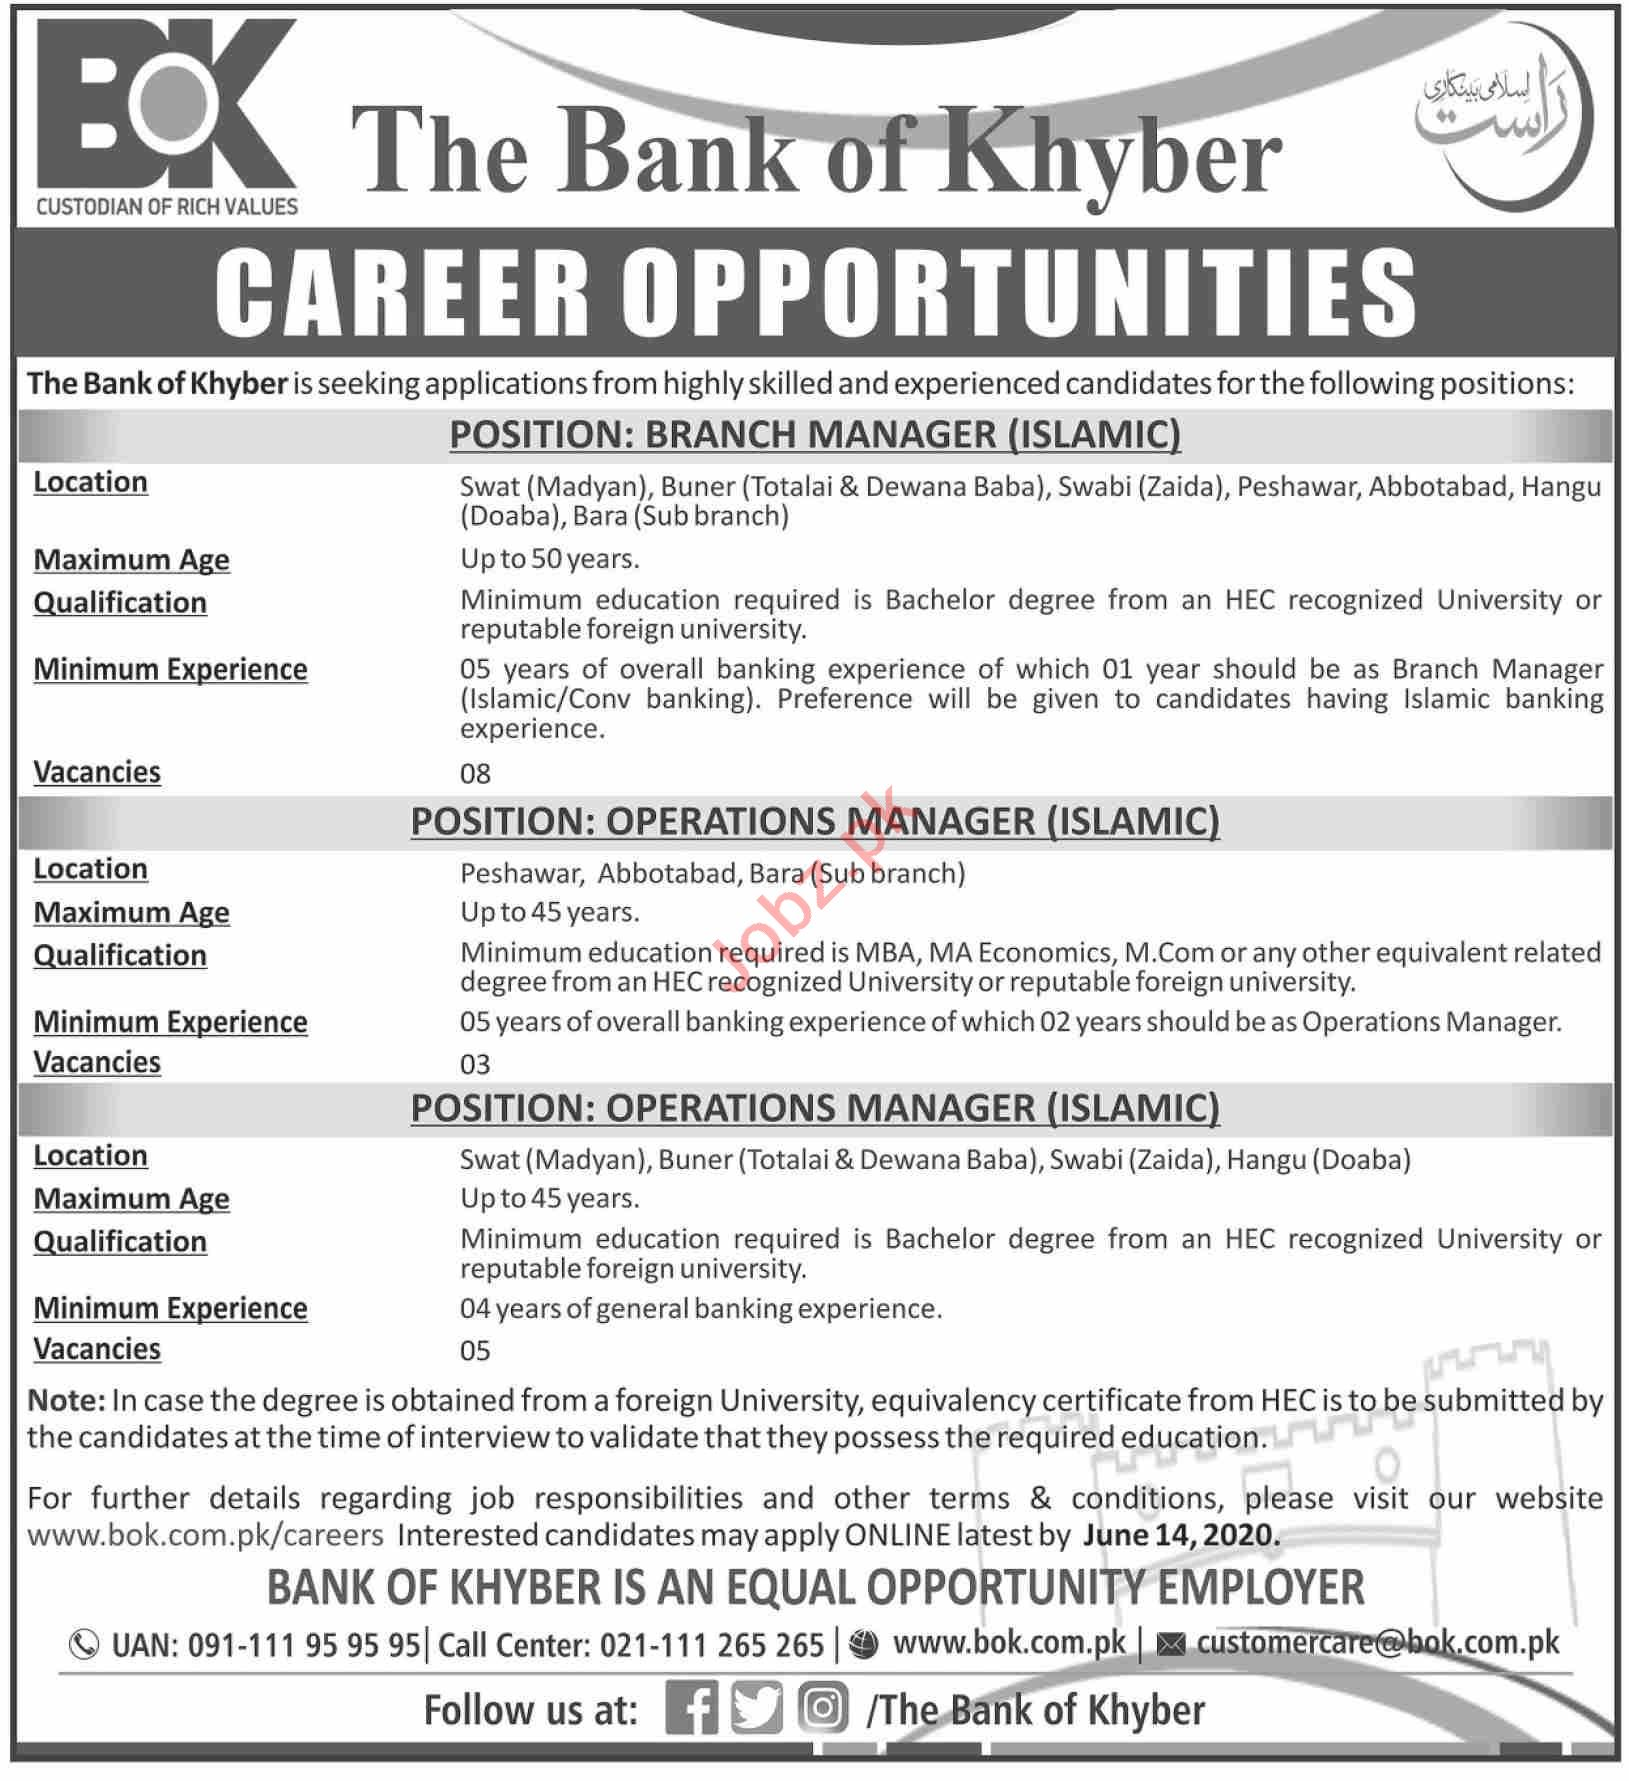 The Bank of Khyber BOK Jobs 2020 for Branch Managers